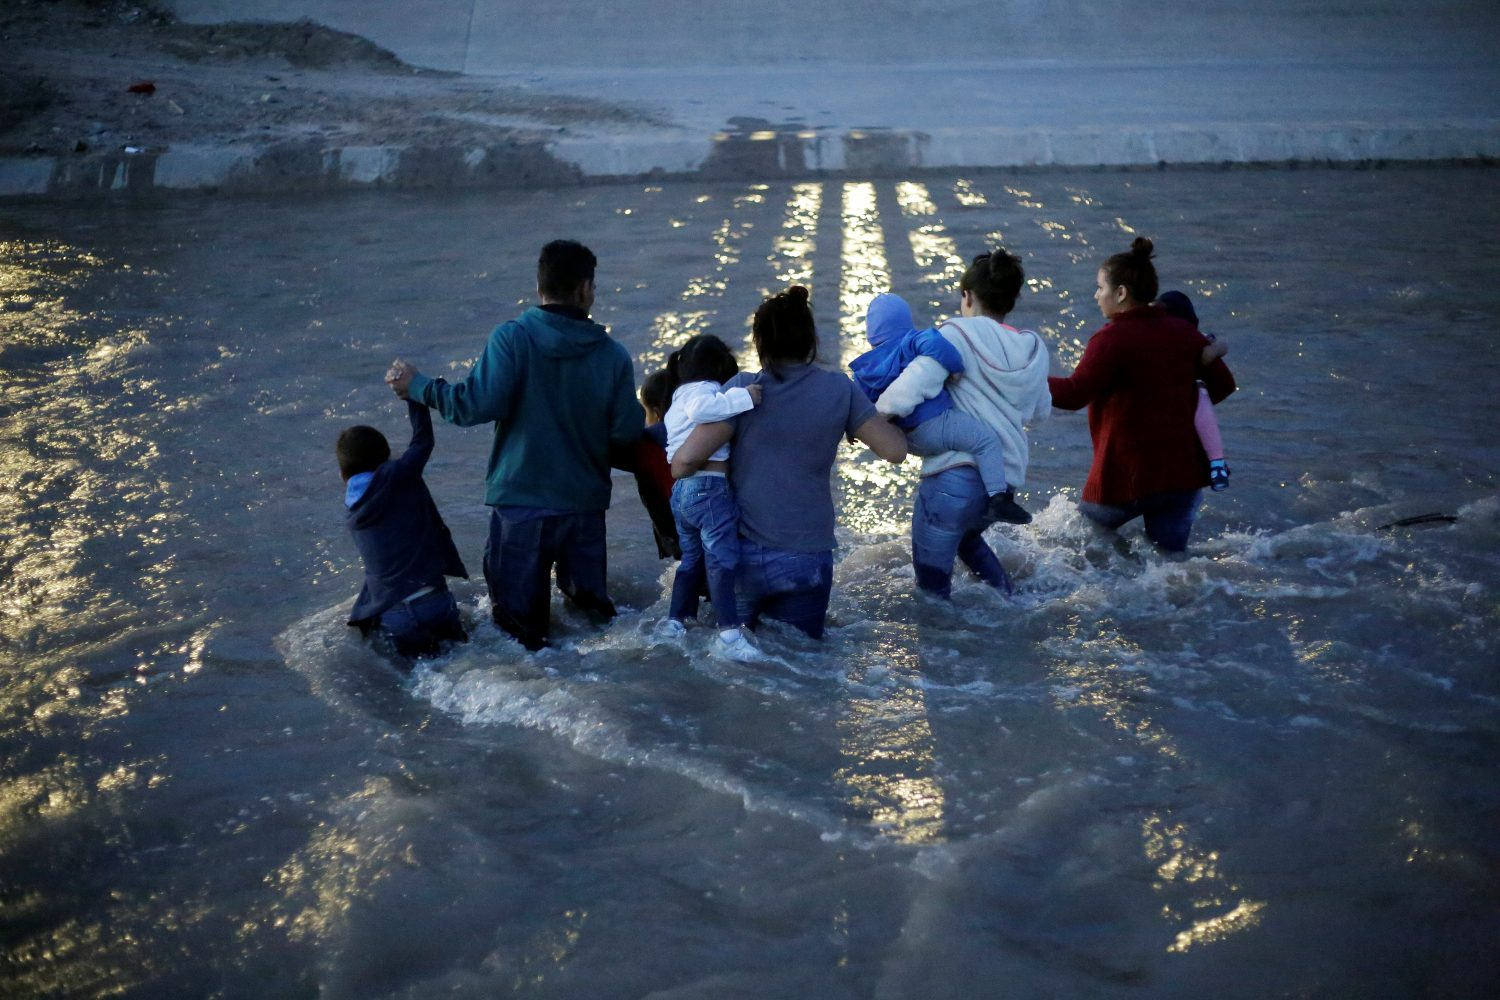 Migrants from Central America cross the Rio Bravo river to enter illegally into the United States to turn themselves in to request for asylum in El Paso, Texas, U.S., as seen from Ciudad Juarez, Mexico June 11, 2019. Picture taken June 11, 2019. REUTERS/Jose Luis Gonzalez